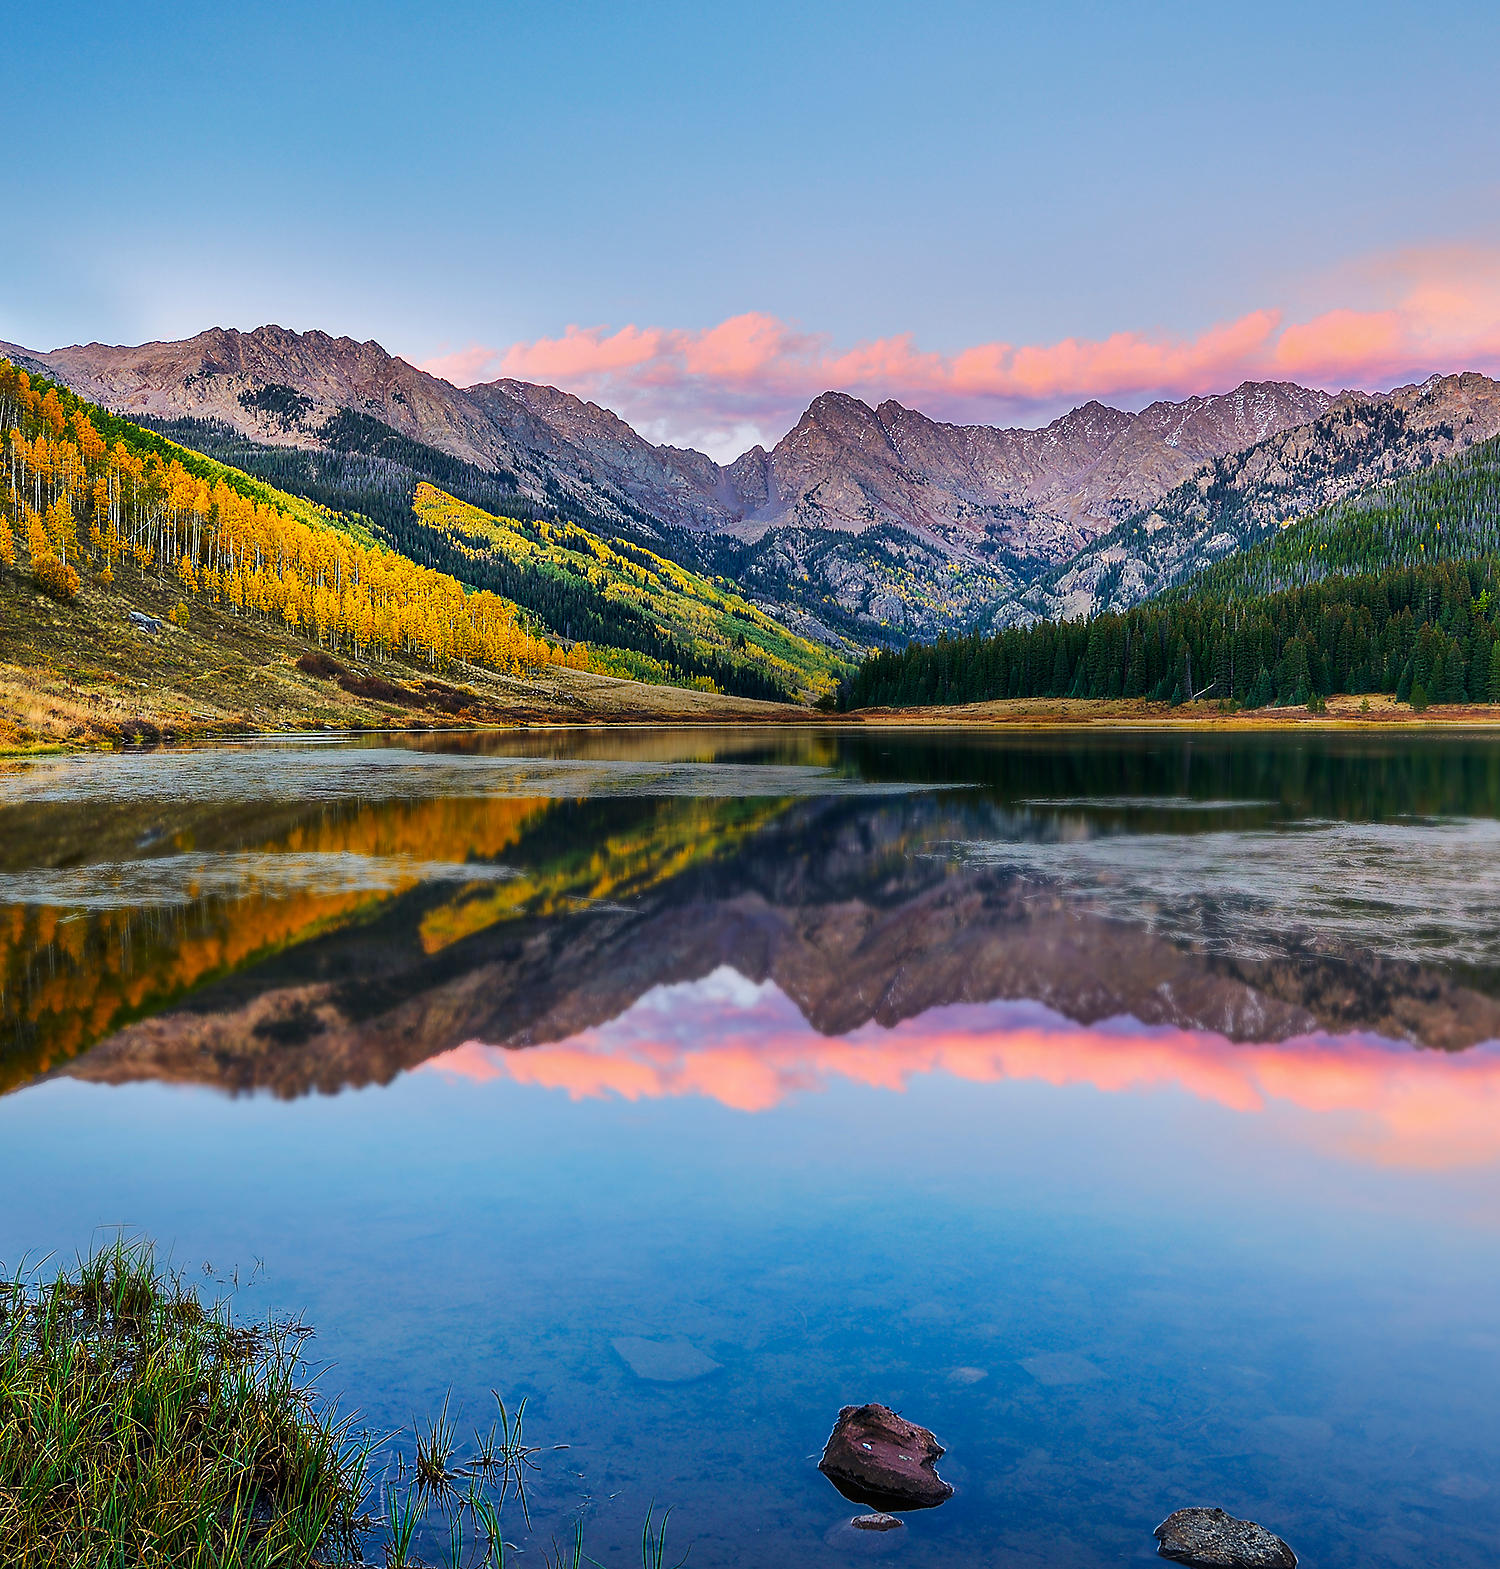 Colorful view of the Aspen Mountains